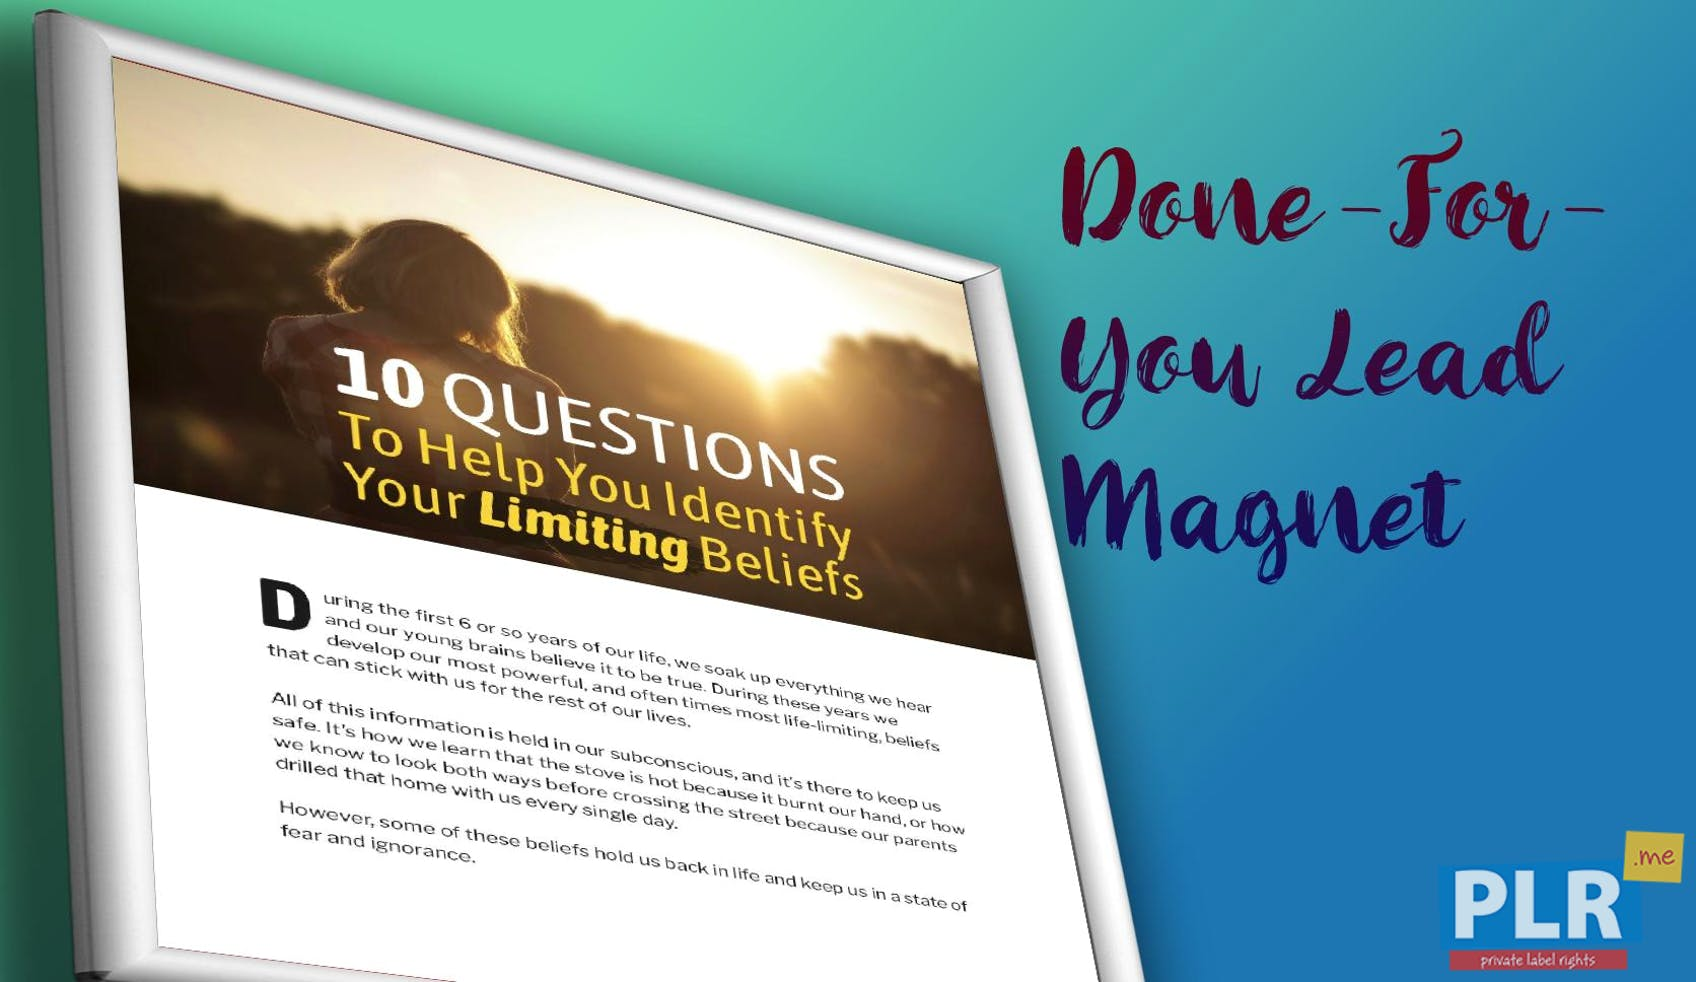 10 Questions To Help You Identify Your Limiting Beliefs